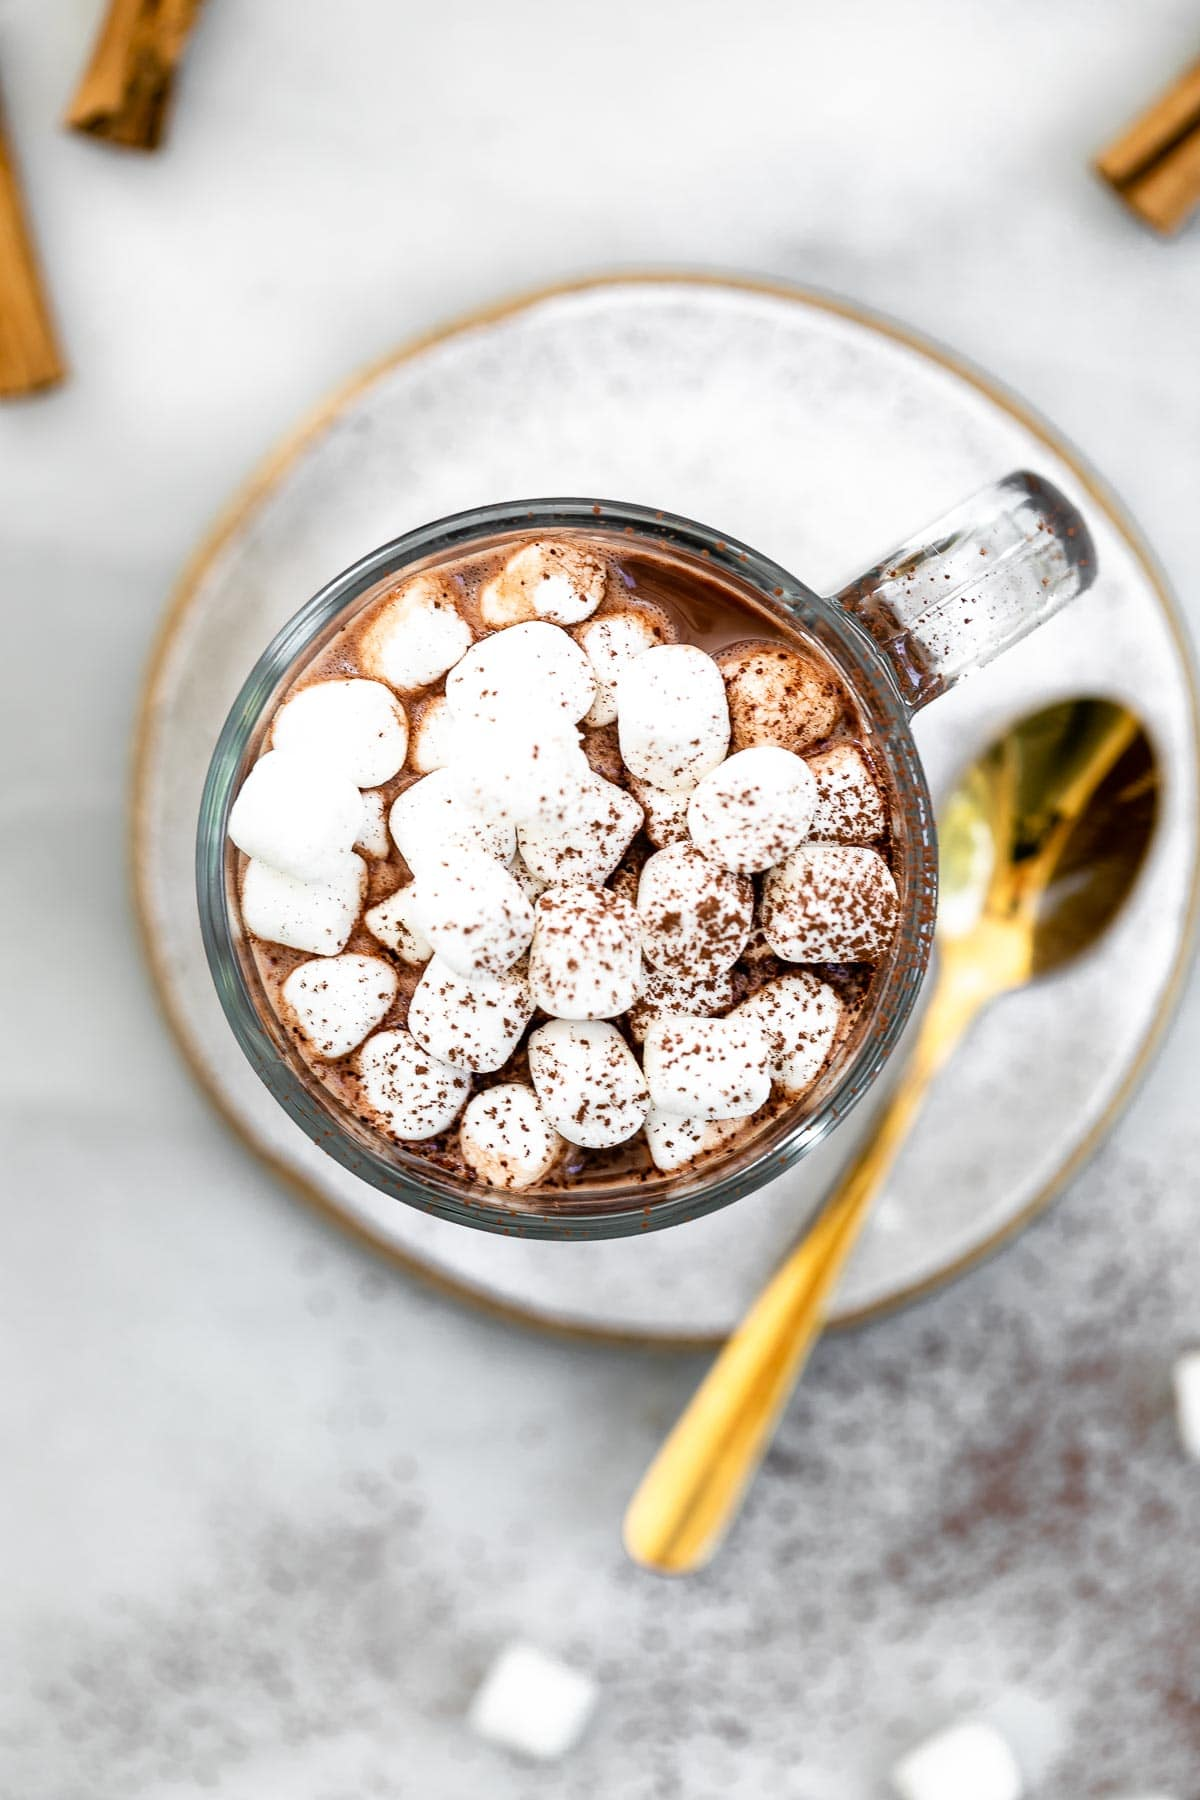 Overhead shot of the vegan hot chocolate with a spoon on the side.